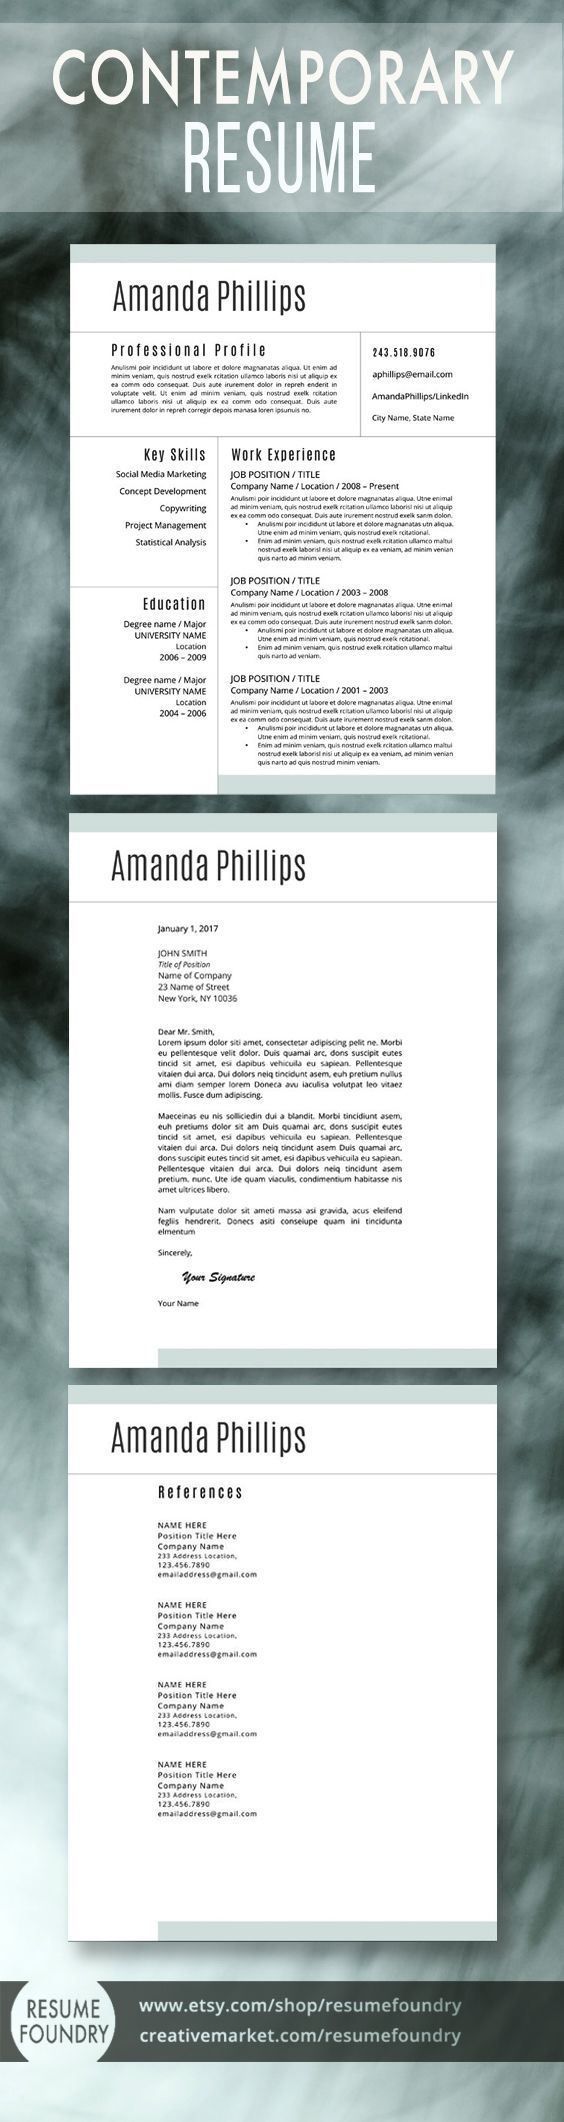 Chronological Resume Samples%0A Beautiful modern resume template by Resume Foundry  One  two or three page  resume  Cover Letter  Reference Page  Use in Microsoft Word